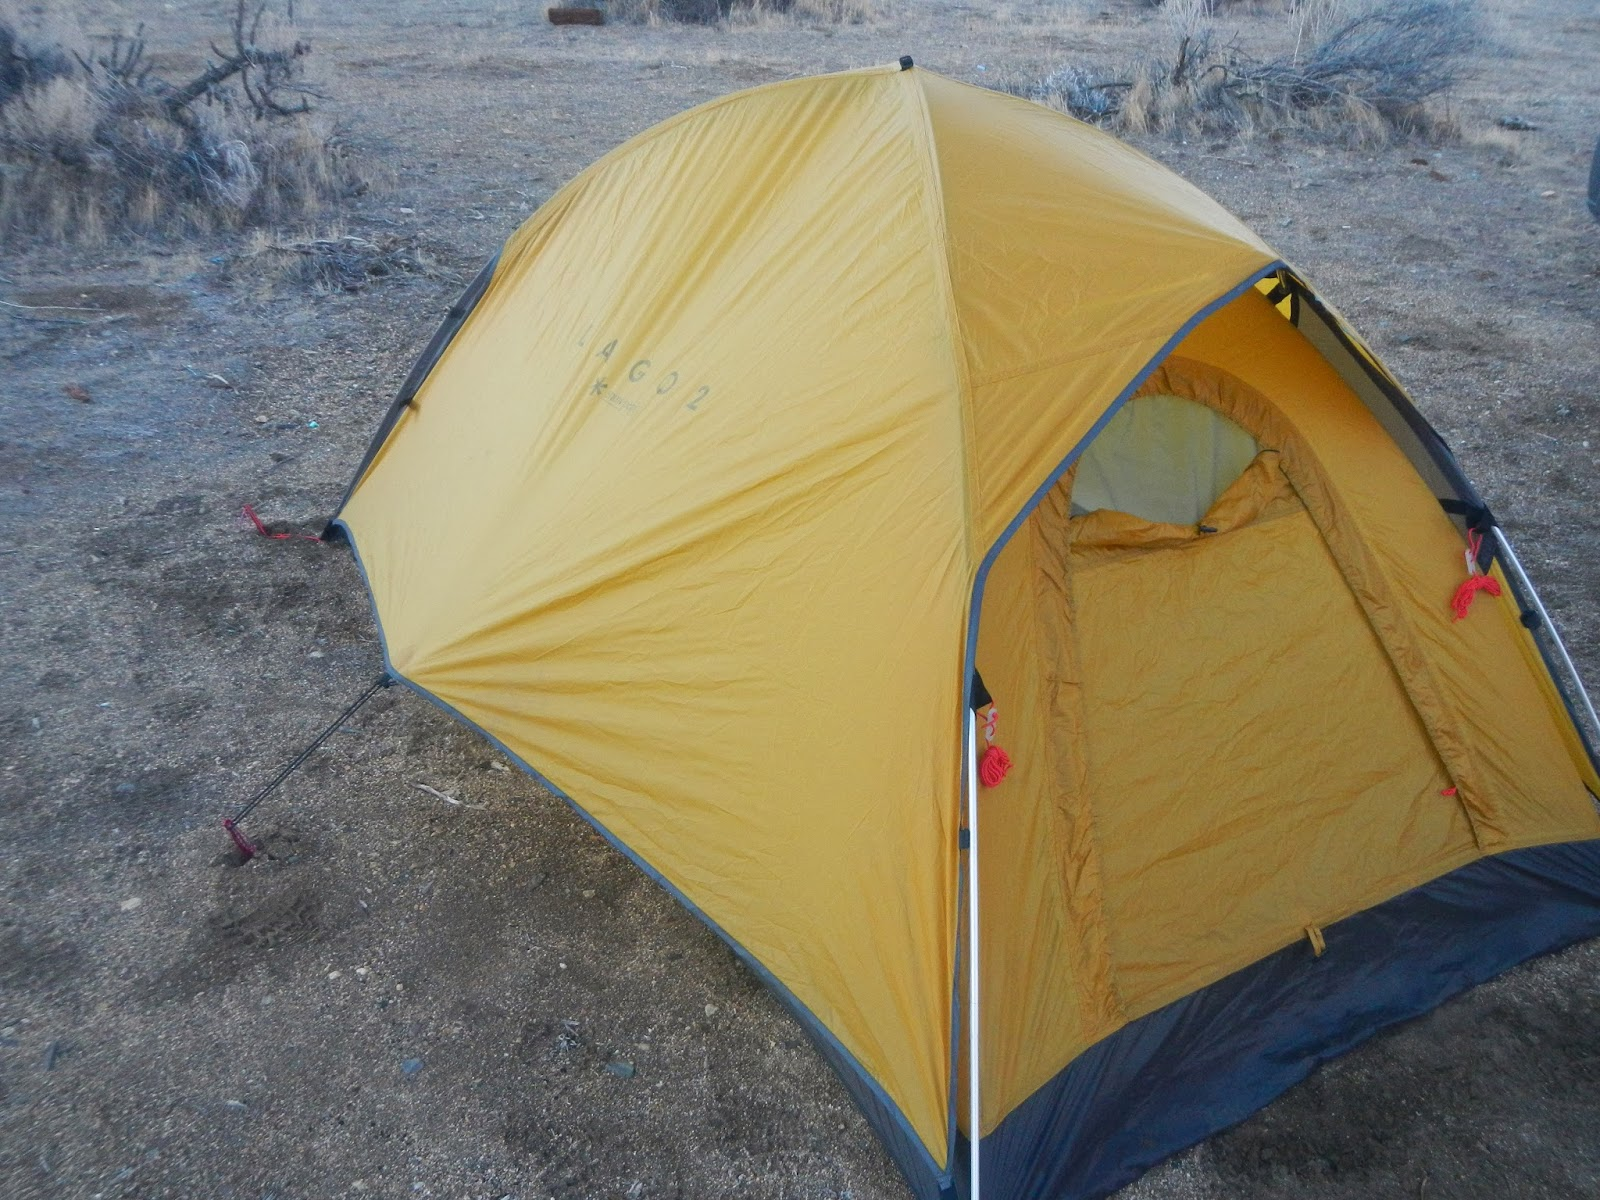 As I write this the Fly Creek now can be found all over the internet for as low as $280 and I was on the verge of buying one until I found out that Snow ... & The Gourmet Sportsman: Snow Peak Lago 2 Tent